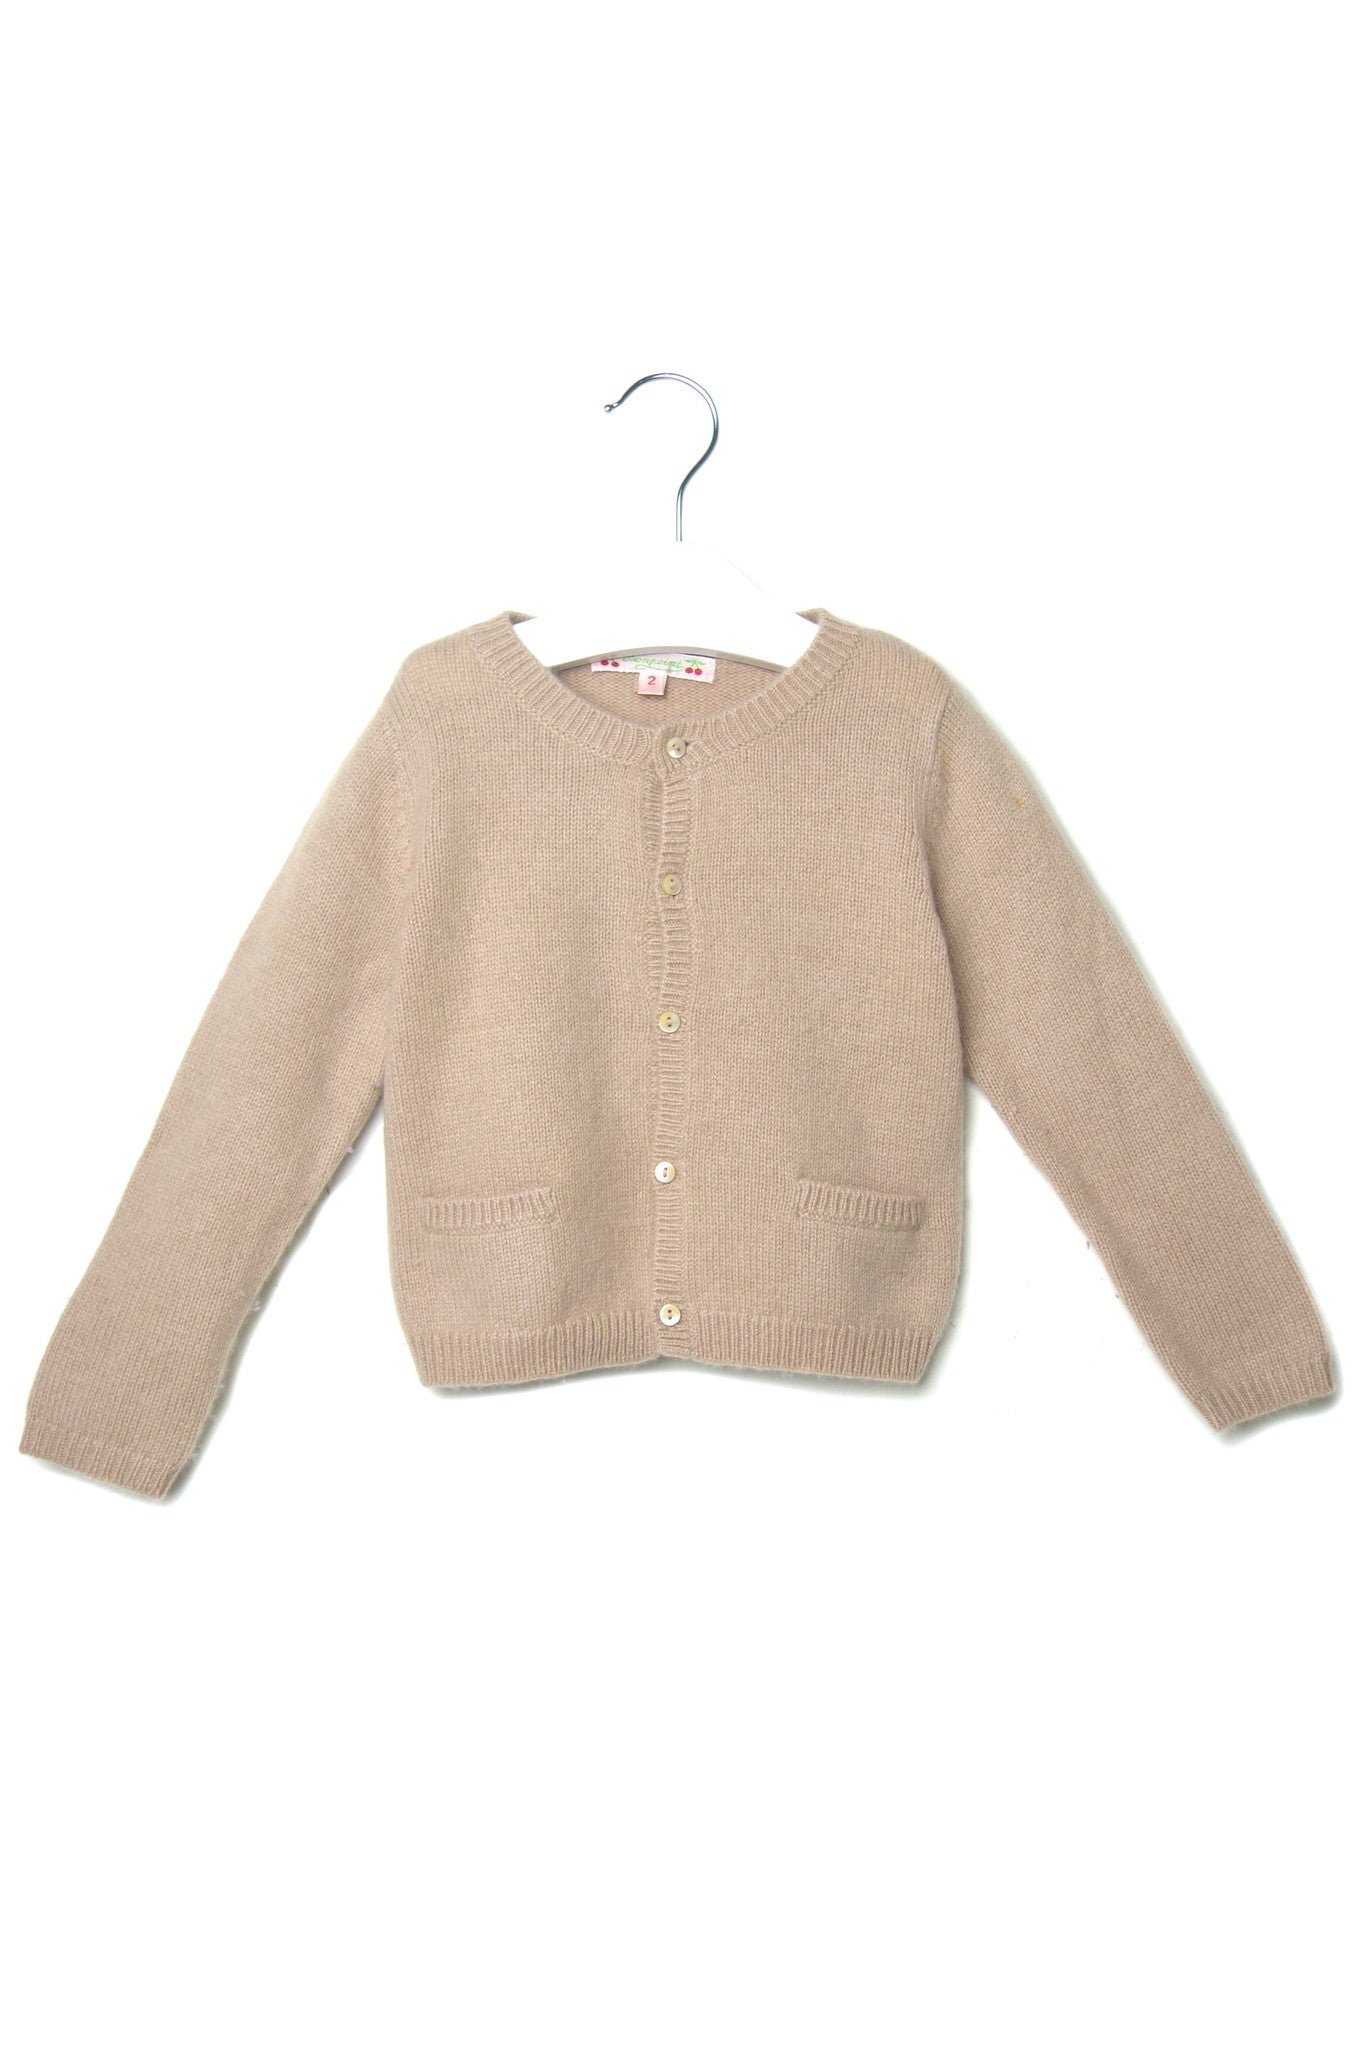 10002047 Bonpoint Kids~Cardigan 2T at Retykle